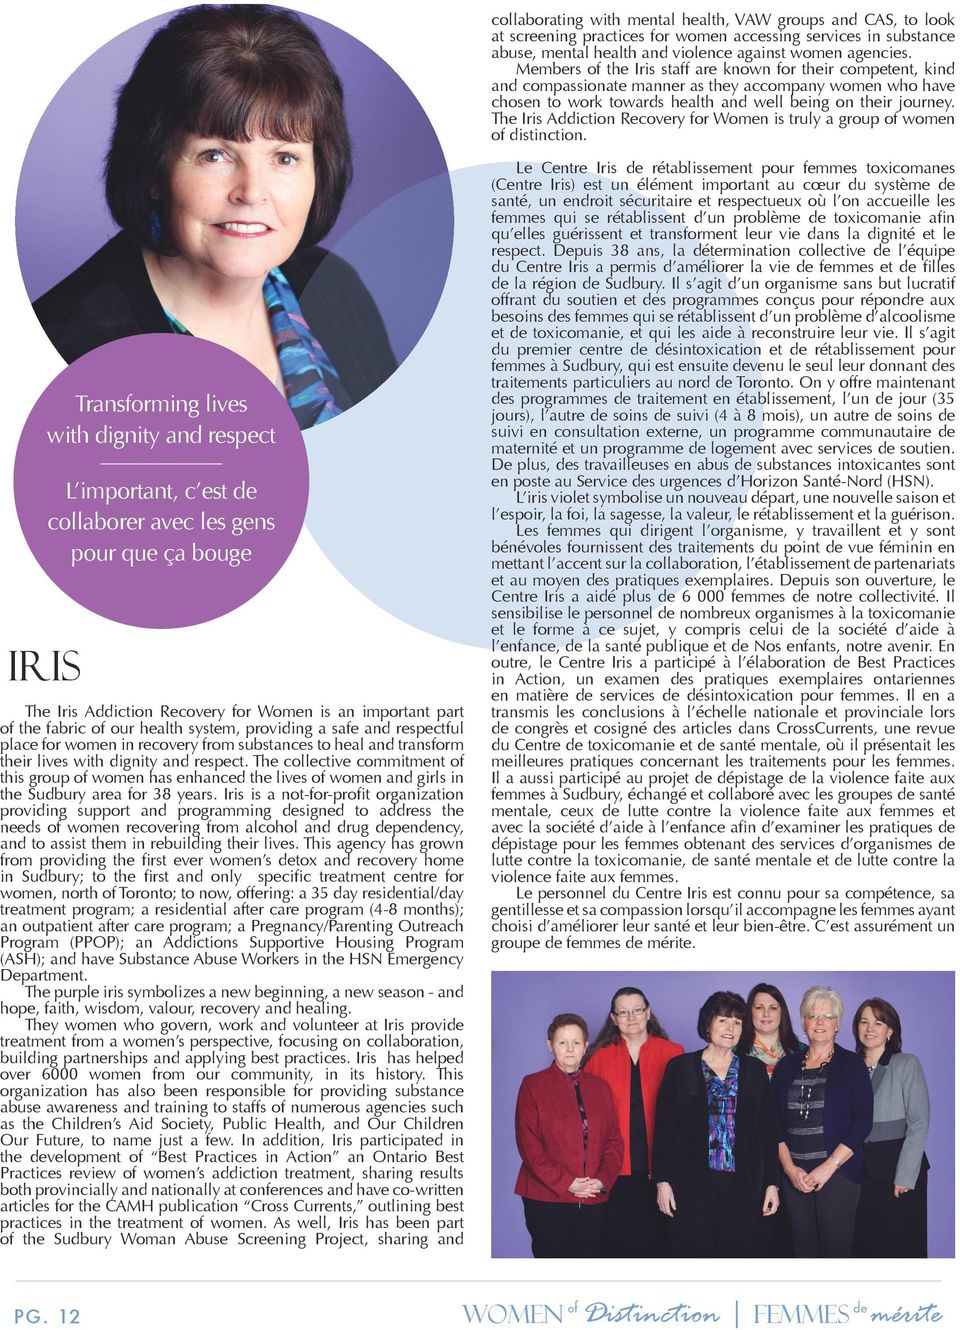 The Iris Addiction Recovery for Women is truly a group of women of distinction.